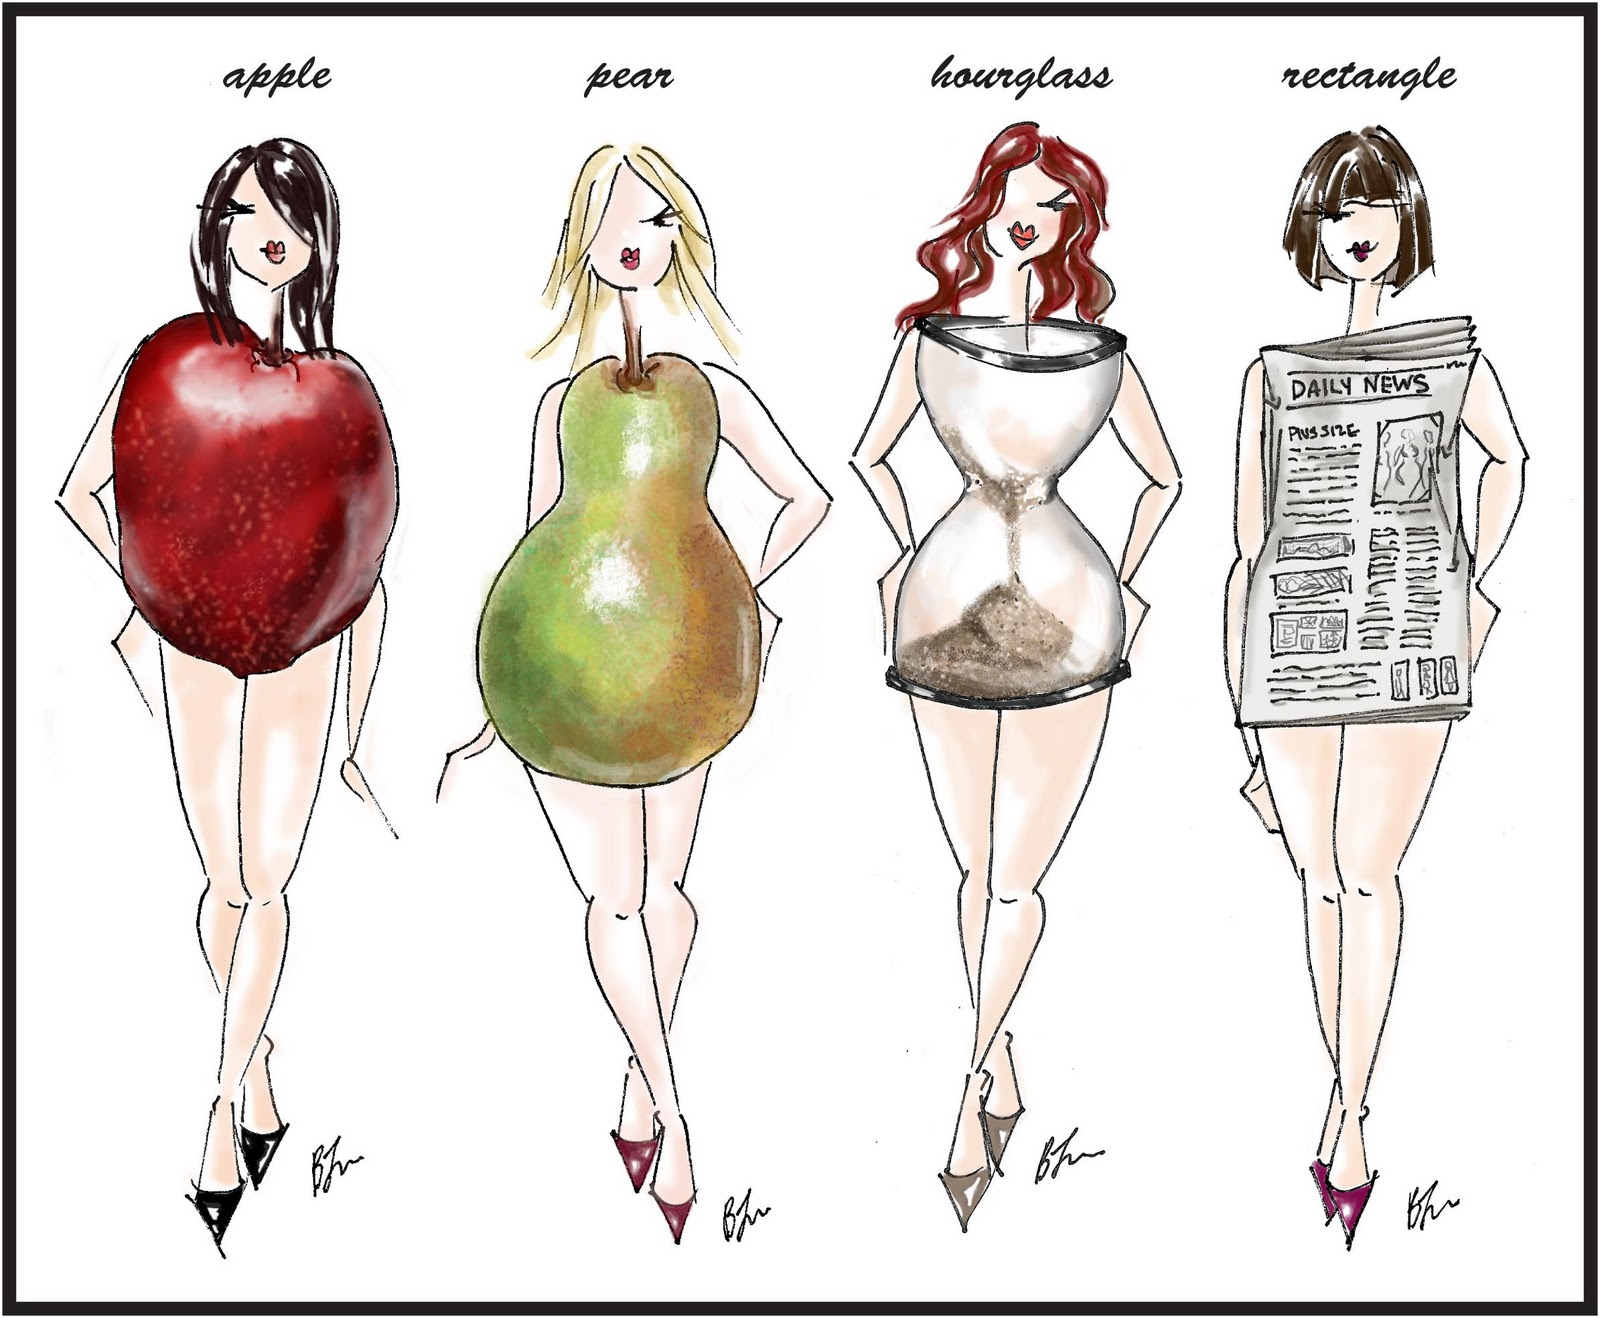 Illustration of four women each of a different body shape, apple, pear, hourglass and rectangle.